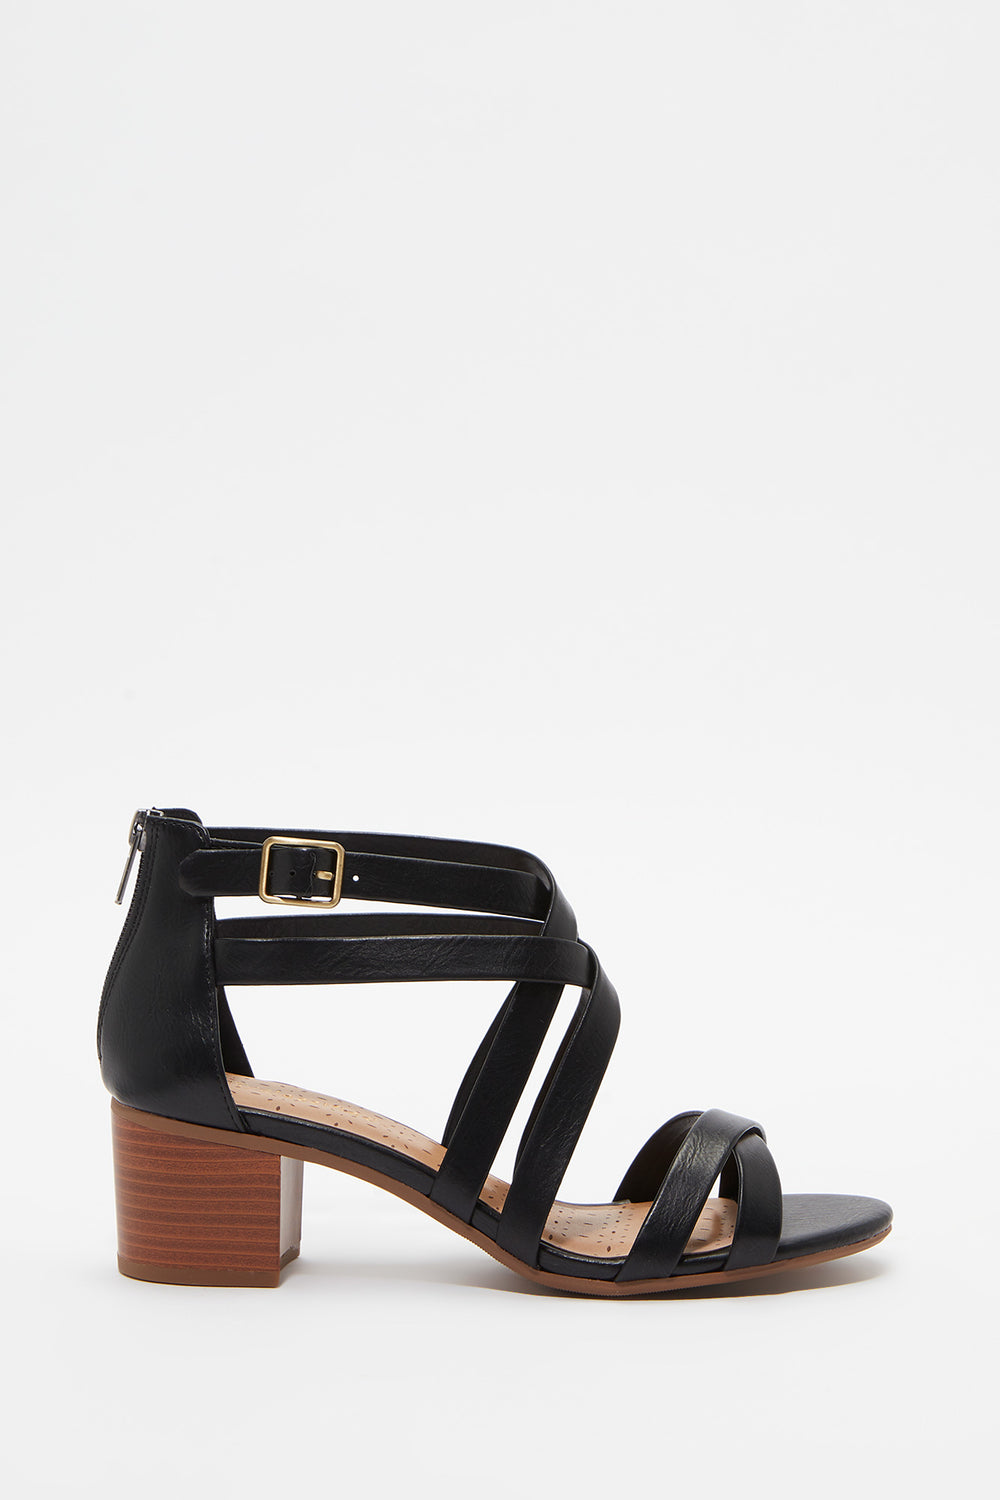 Criss Cross Open-Toe Block Heel Sandal Black